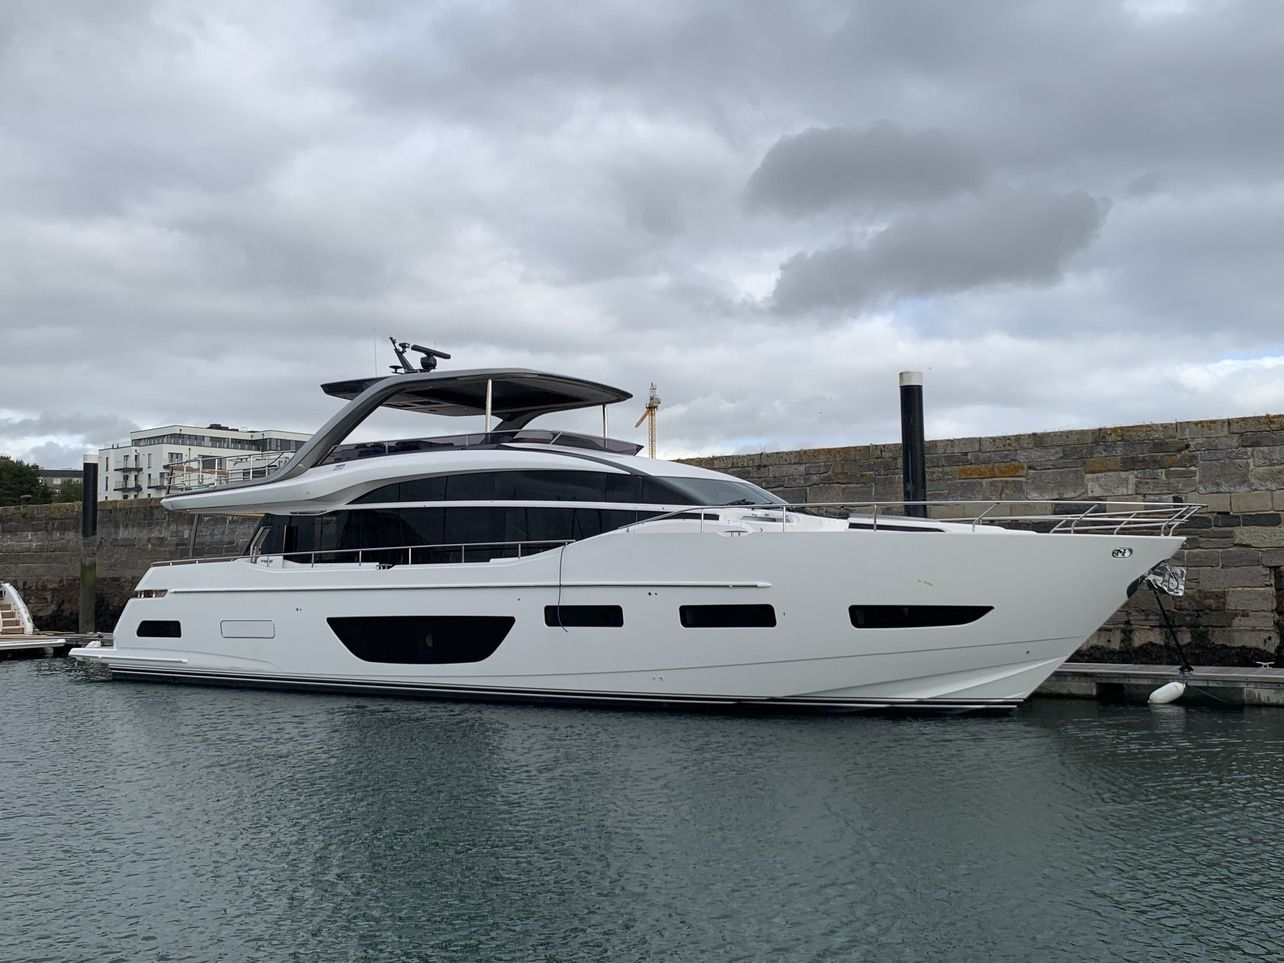 Boats for sale - New and used Princess, Fairline, Williams